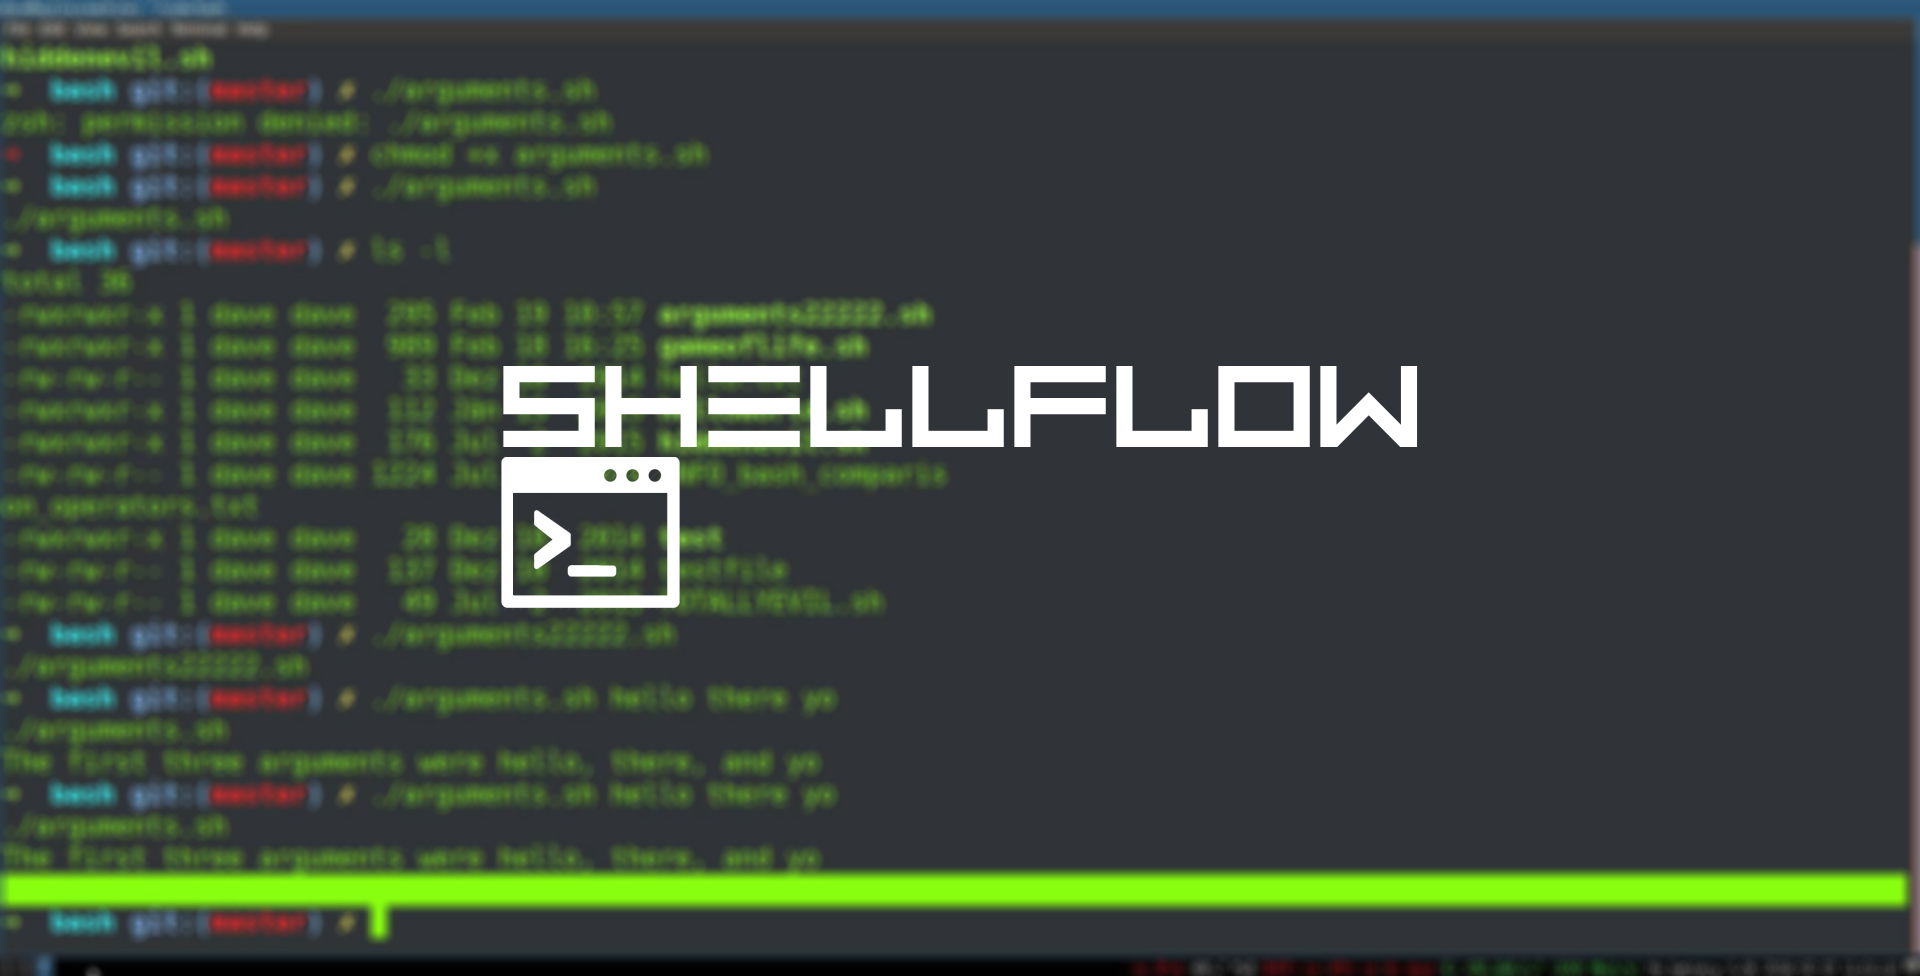 ShellFl0w – Architetture ed Assembly Hack